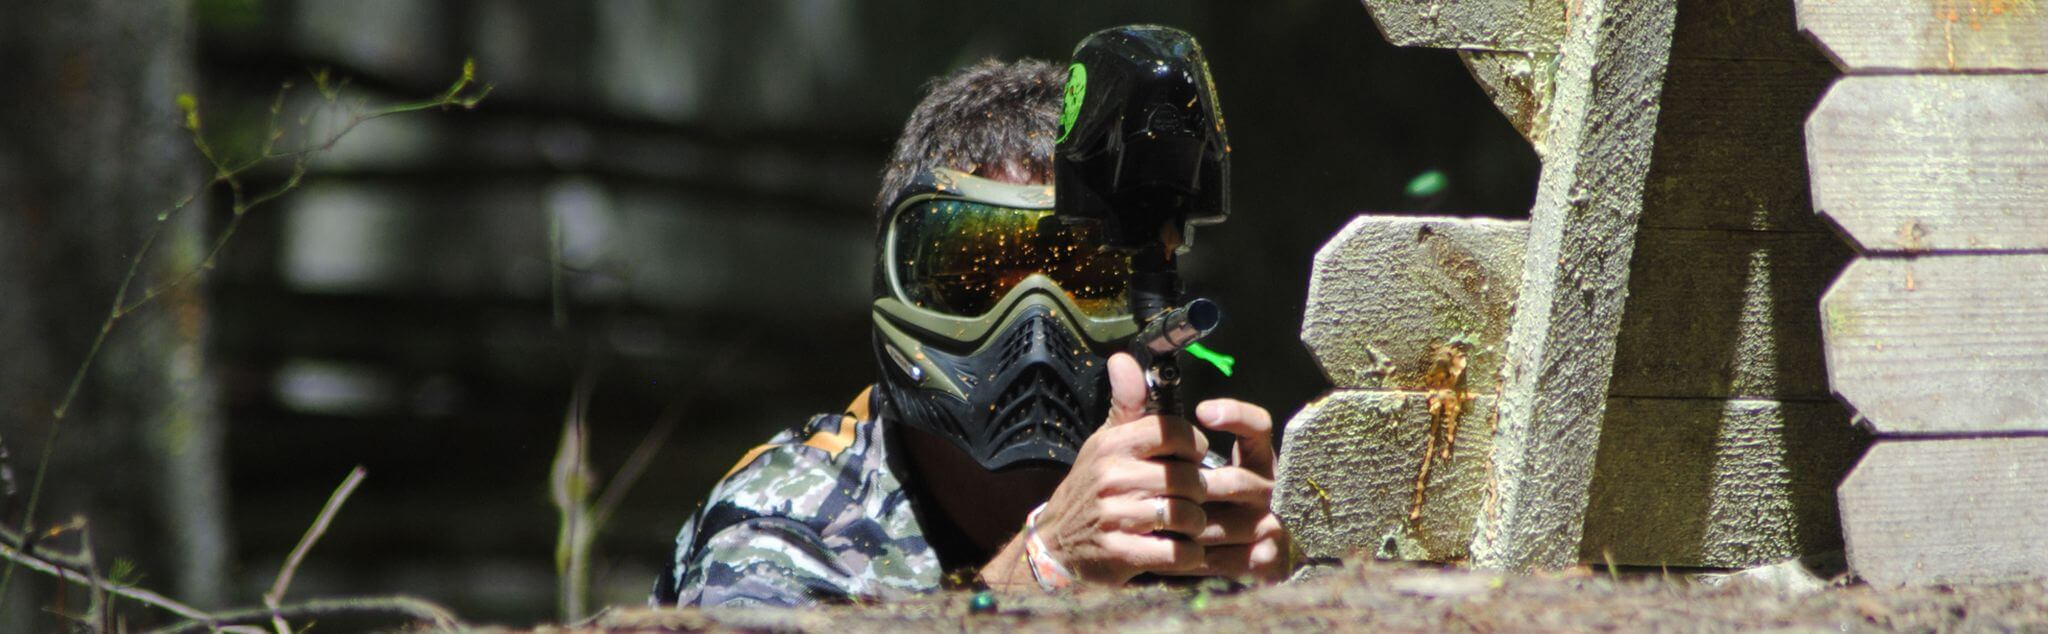 Paintball in Benameji